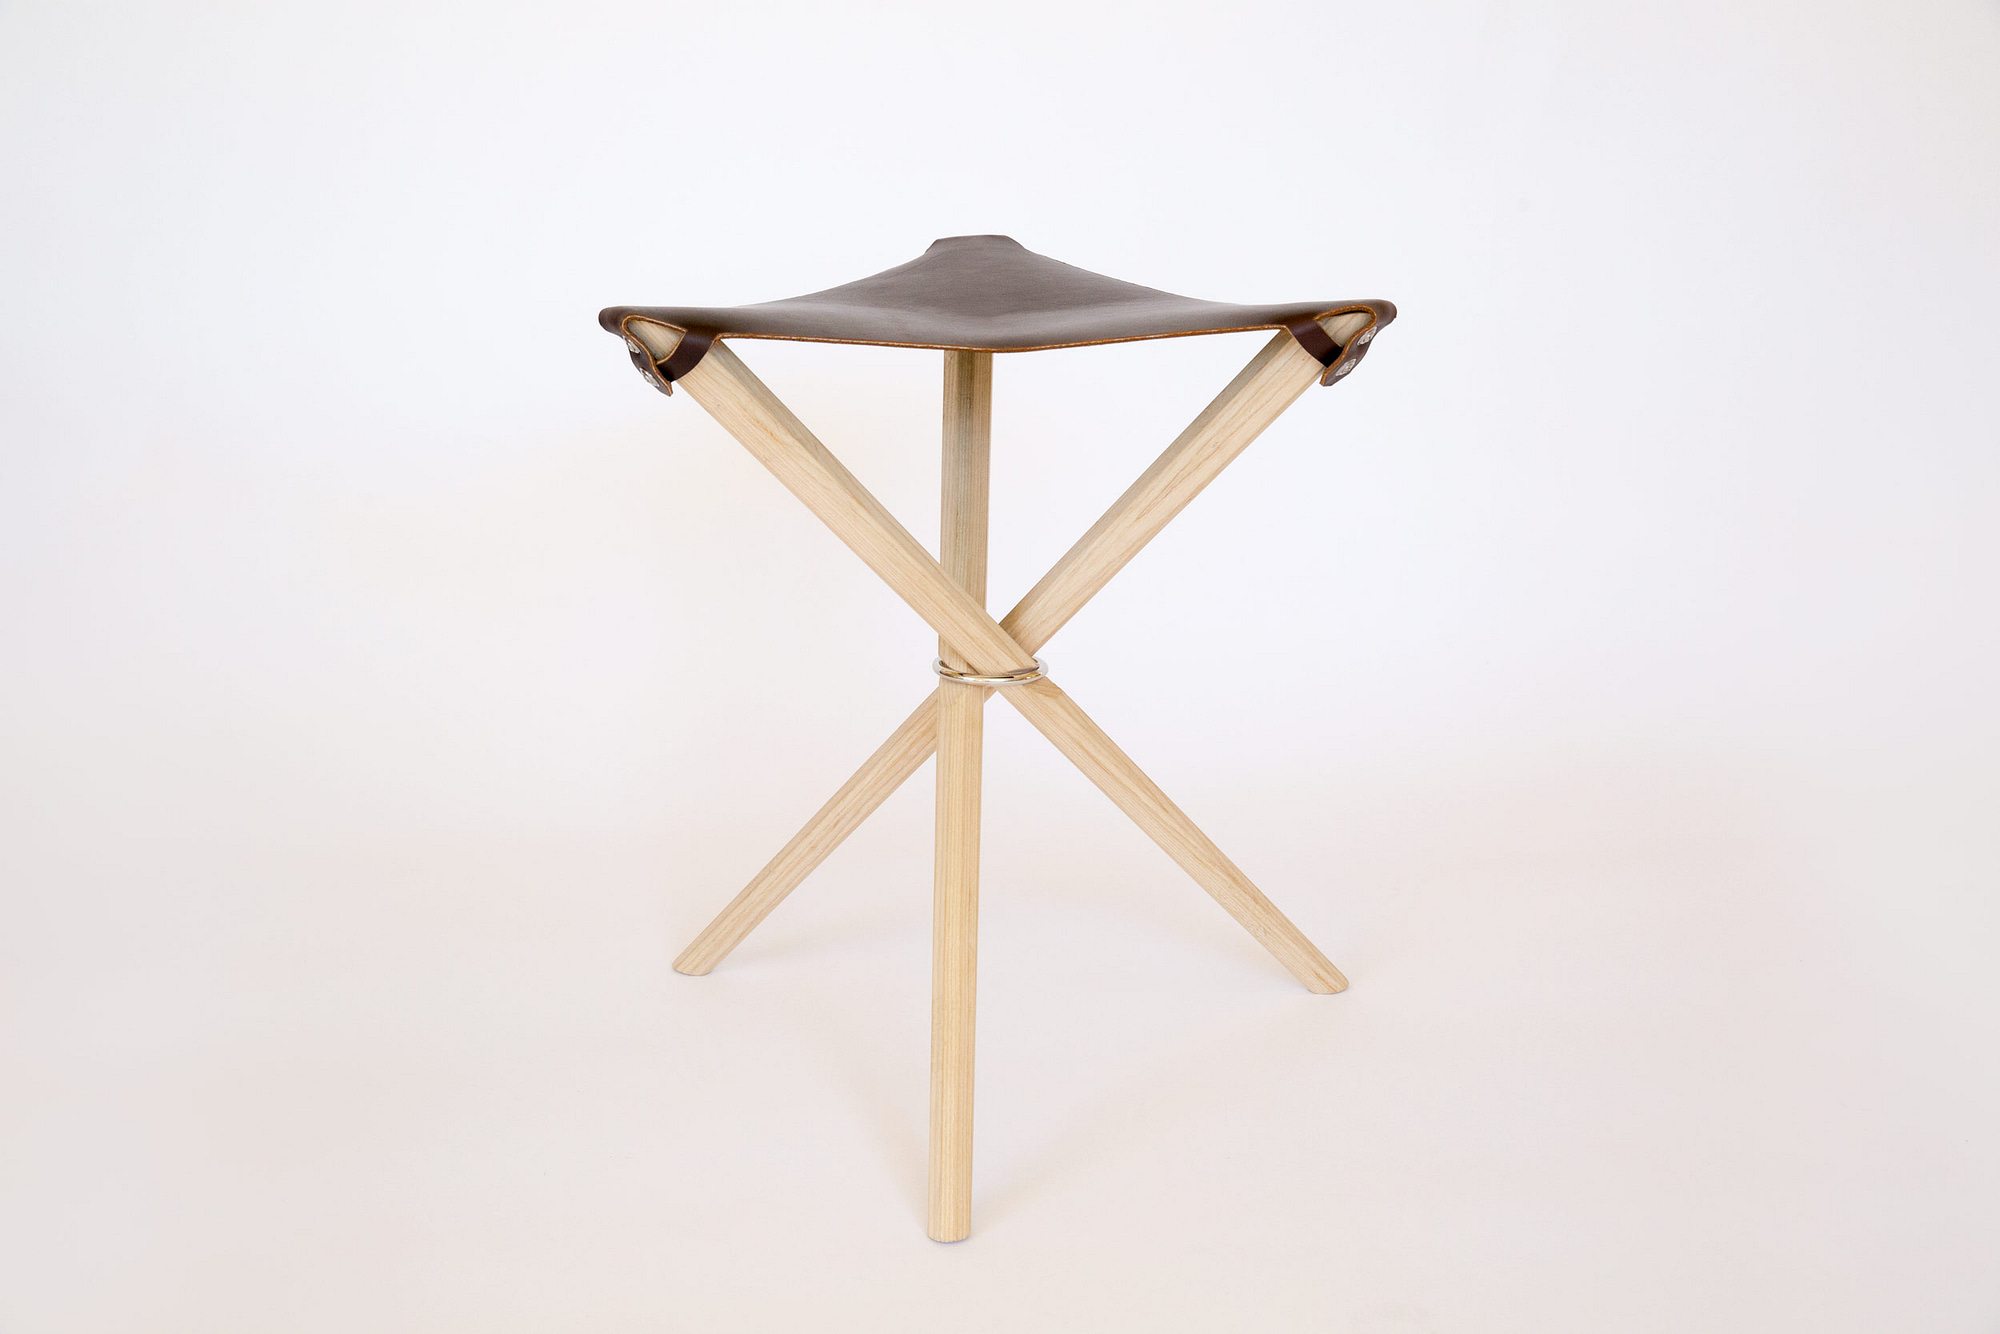 Coyote Stool in Dark Brown Latigo